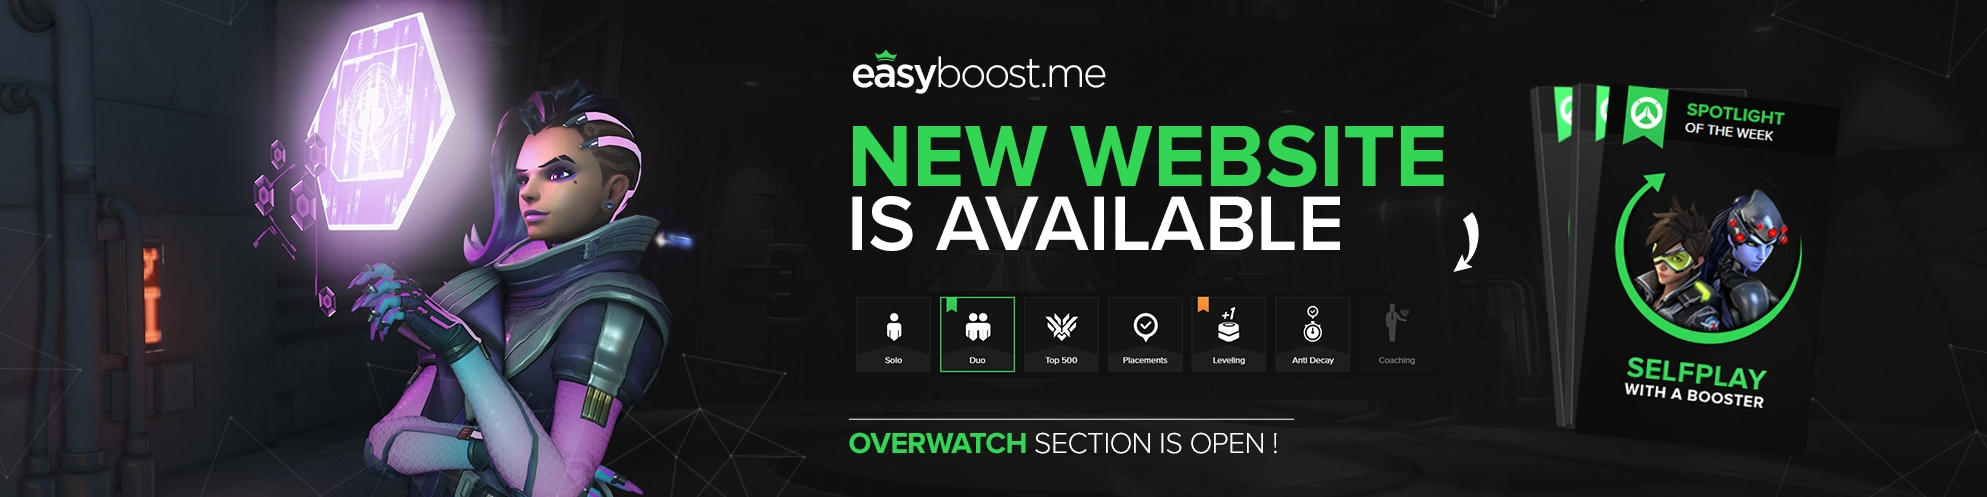 Easyboost.me (@easyboostme) Cover Image